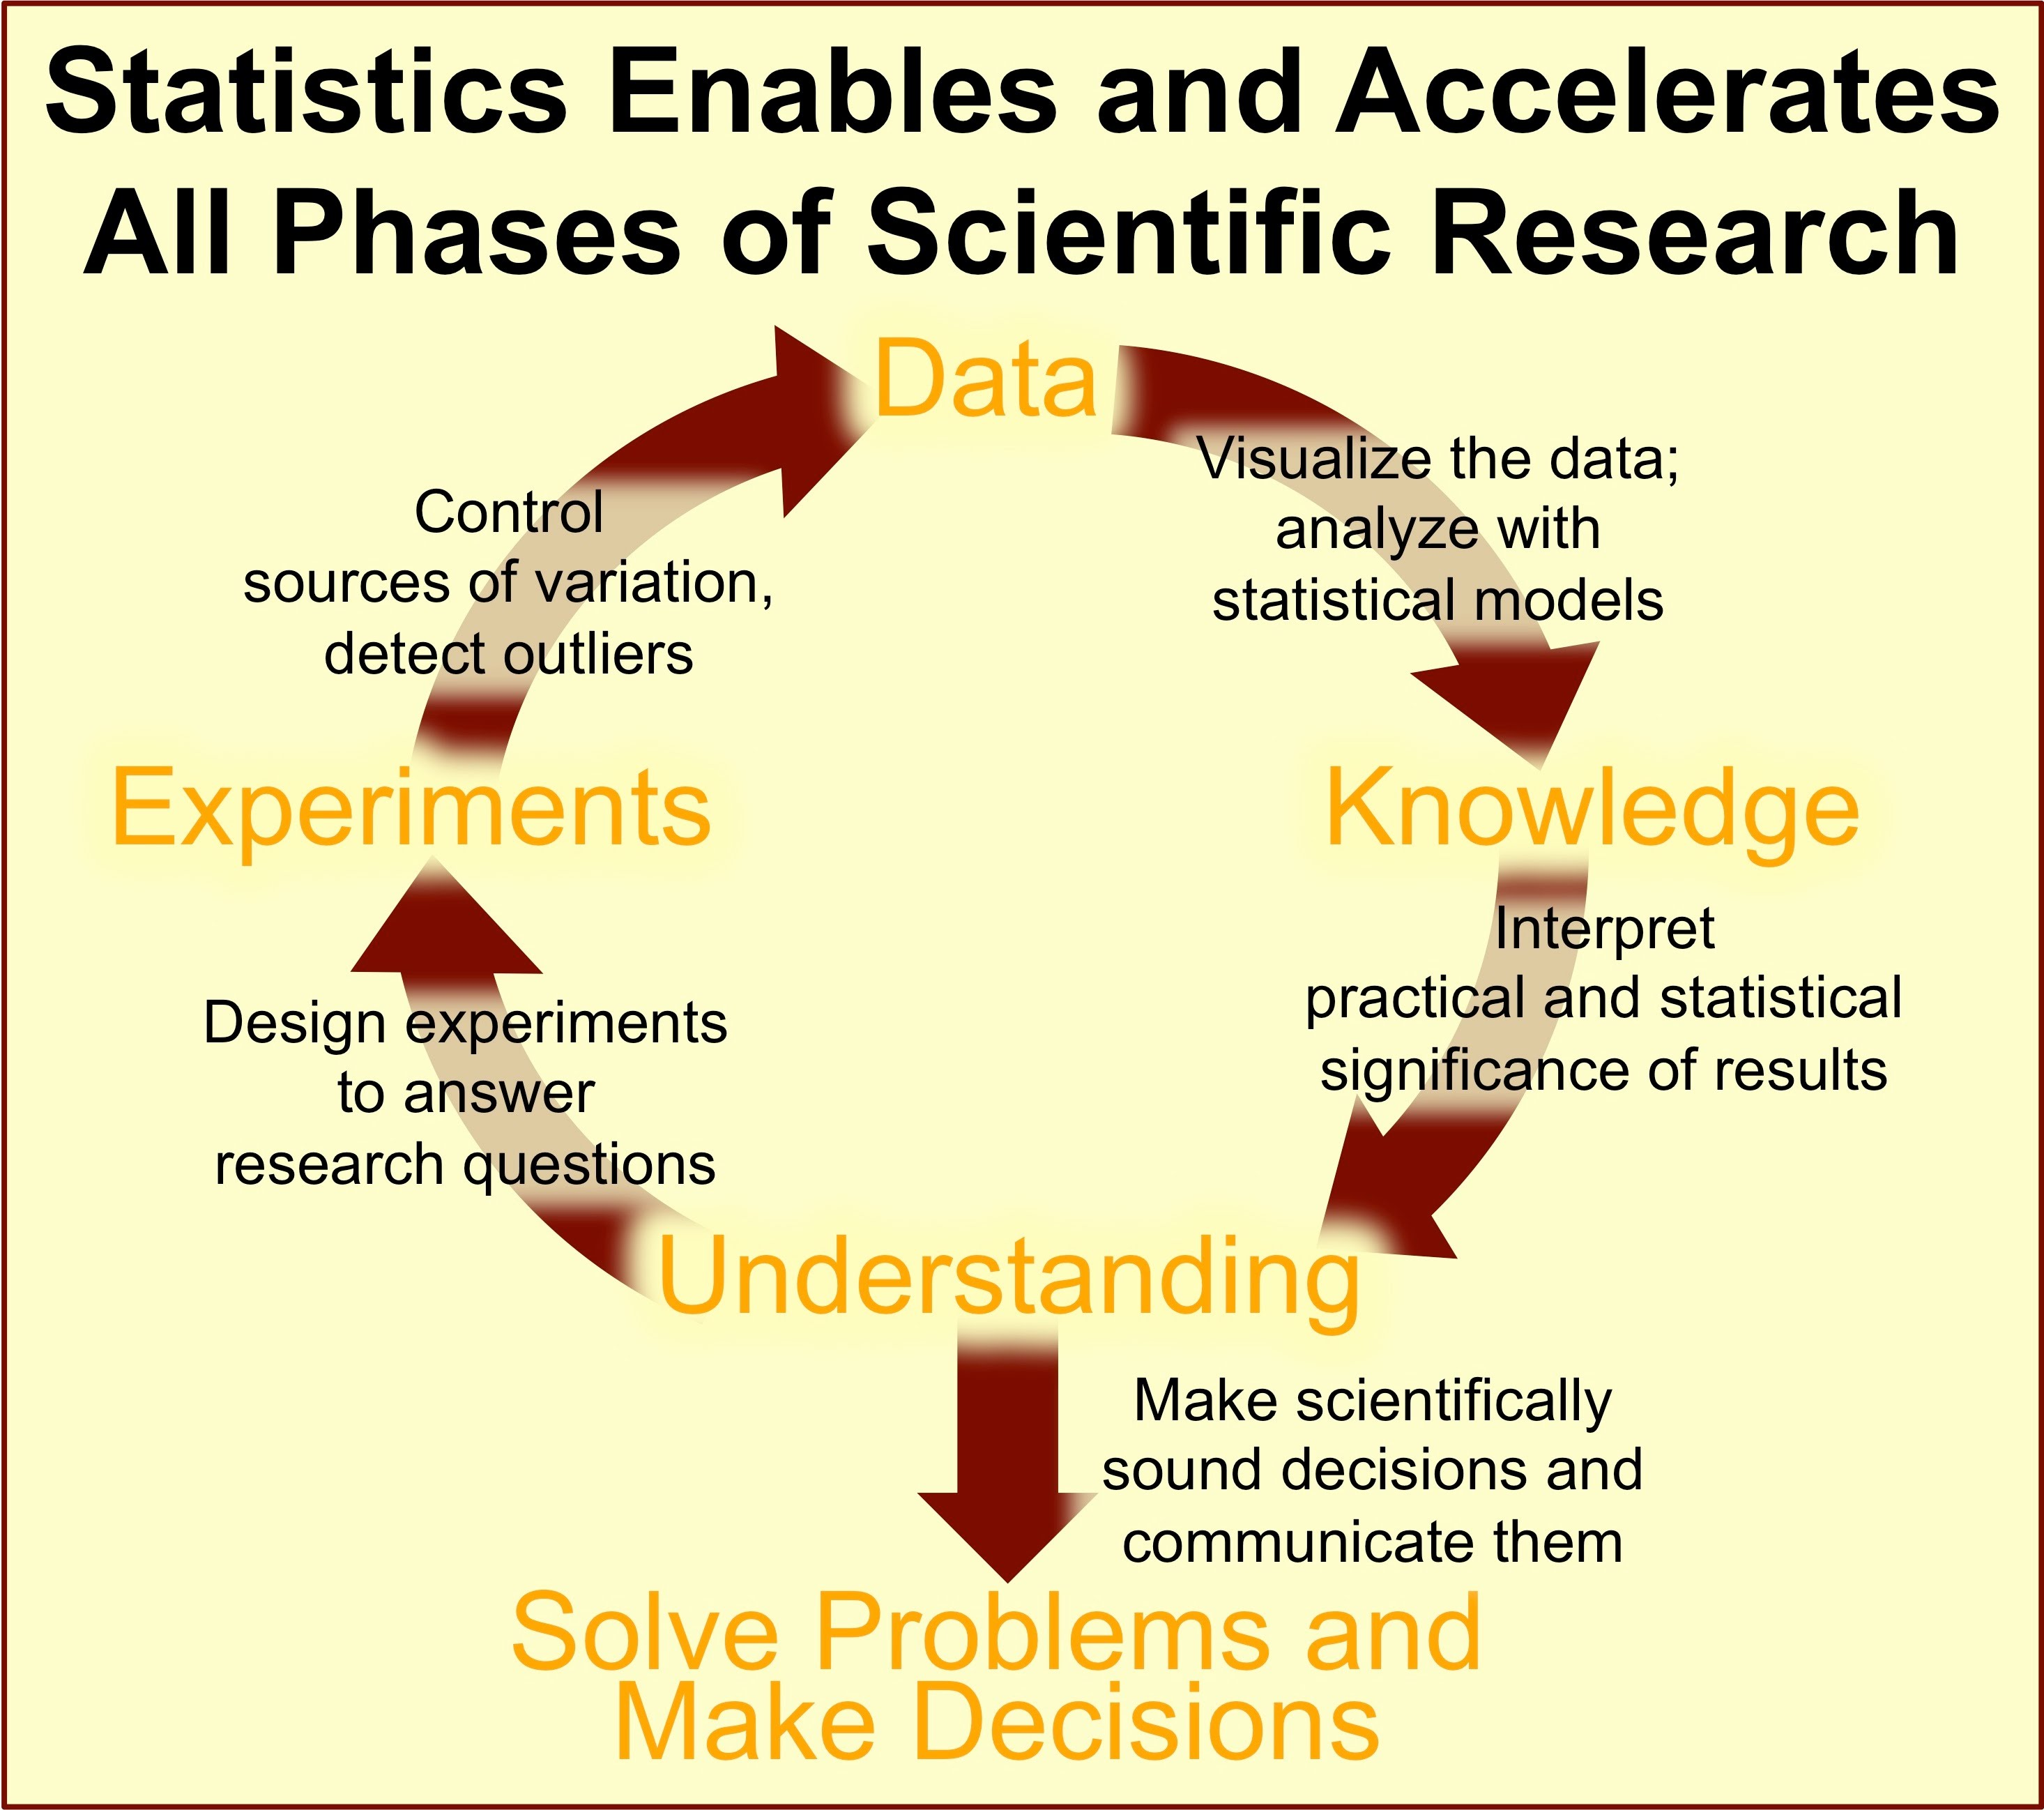 Statistics Enables and Accelerates All Phases of Scientific Research